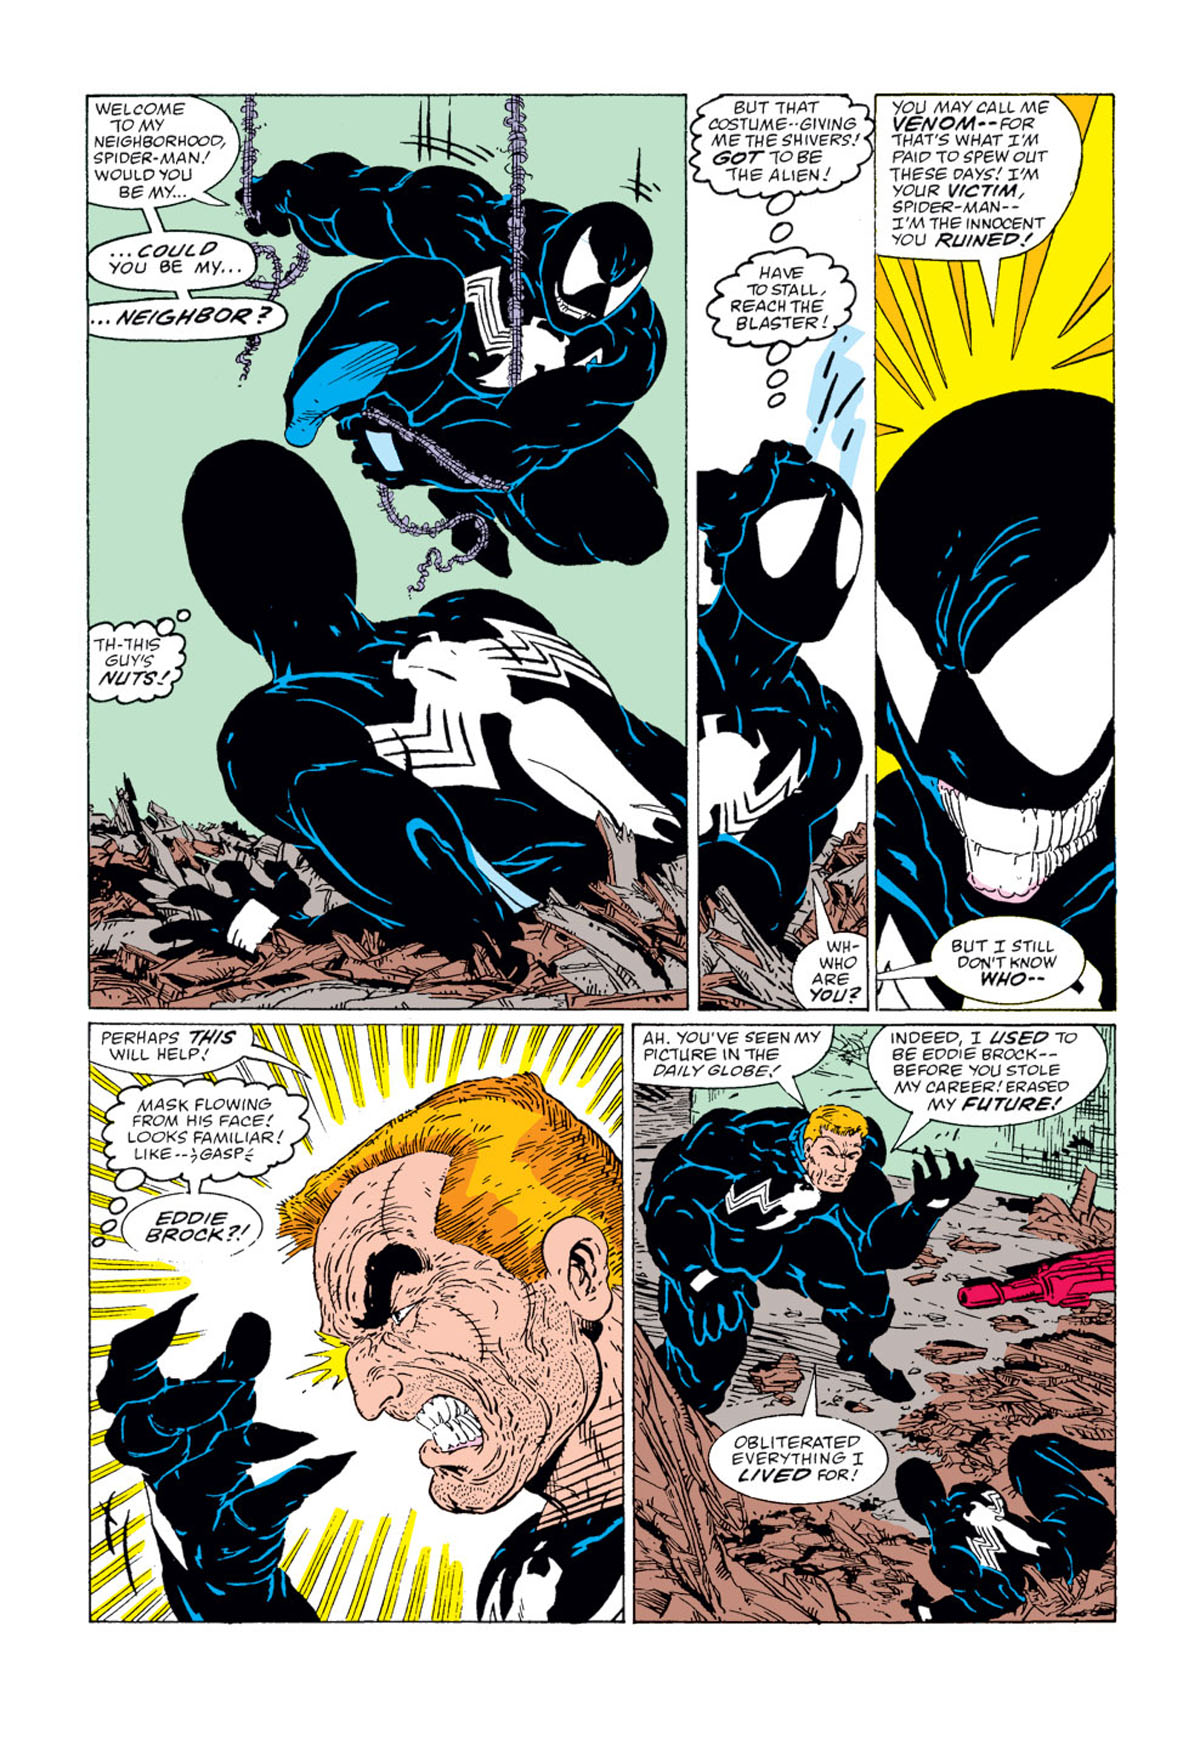 10: Venom – Amazing Spider-Man #300